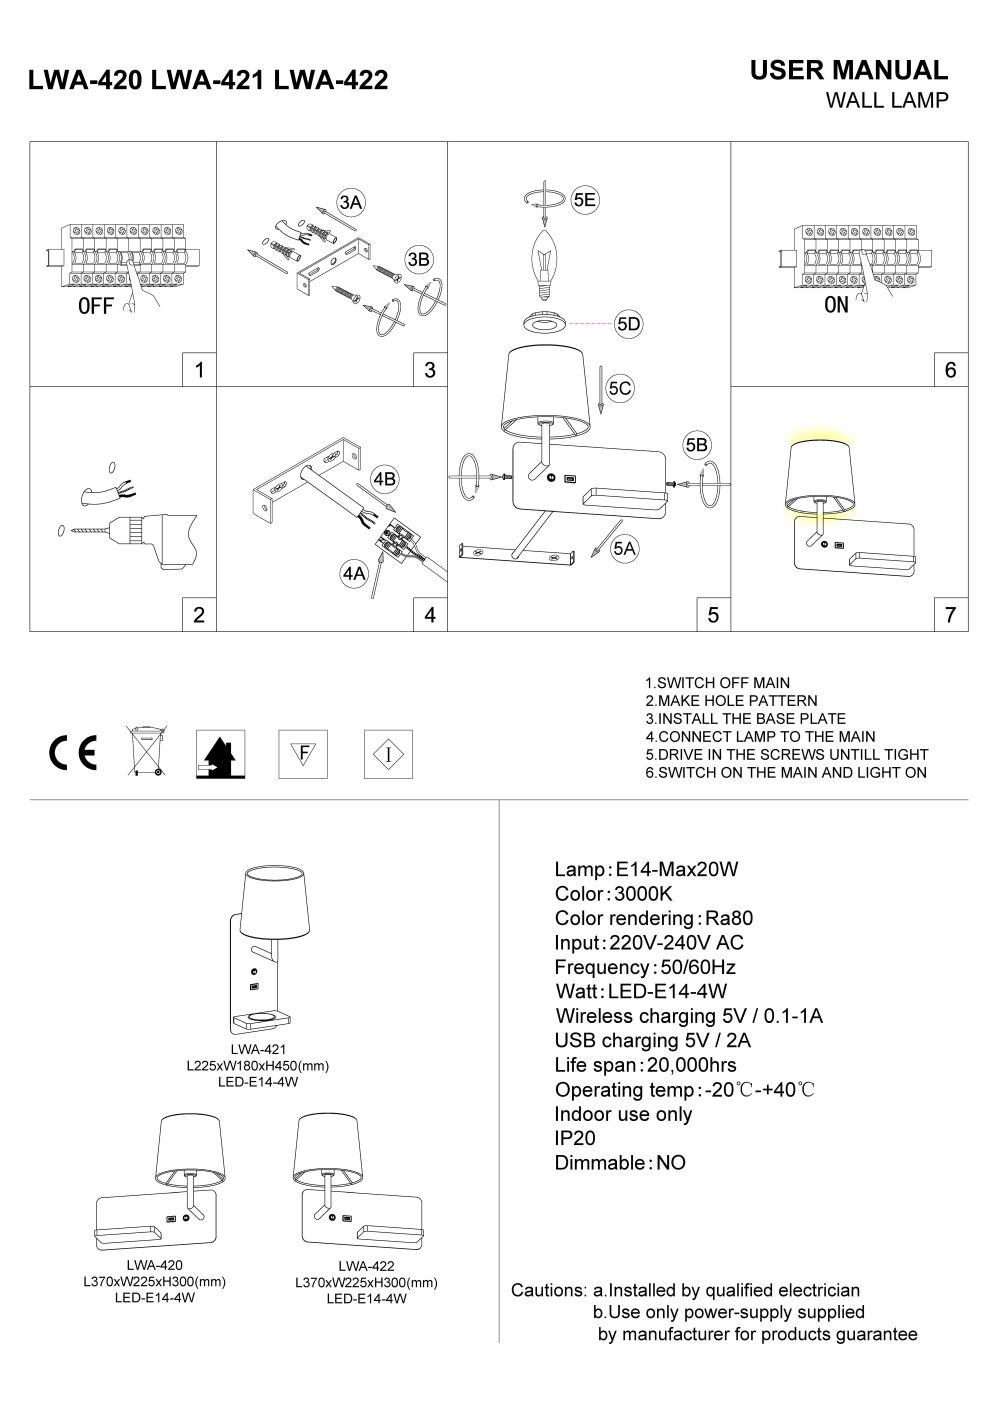 LWA-421 LED bedside wall light installation guide